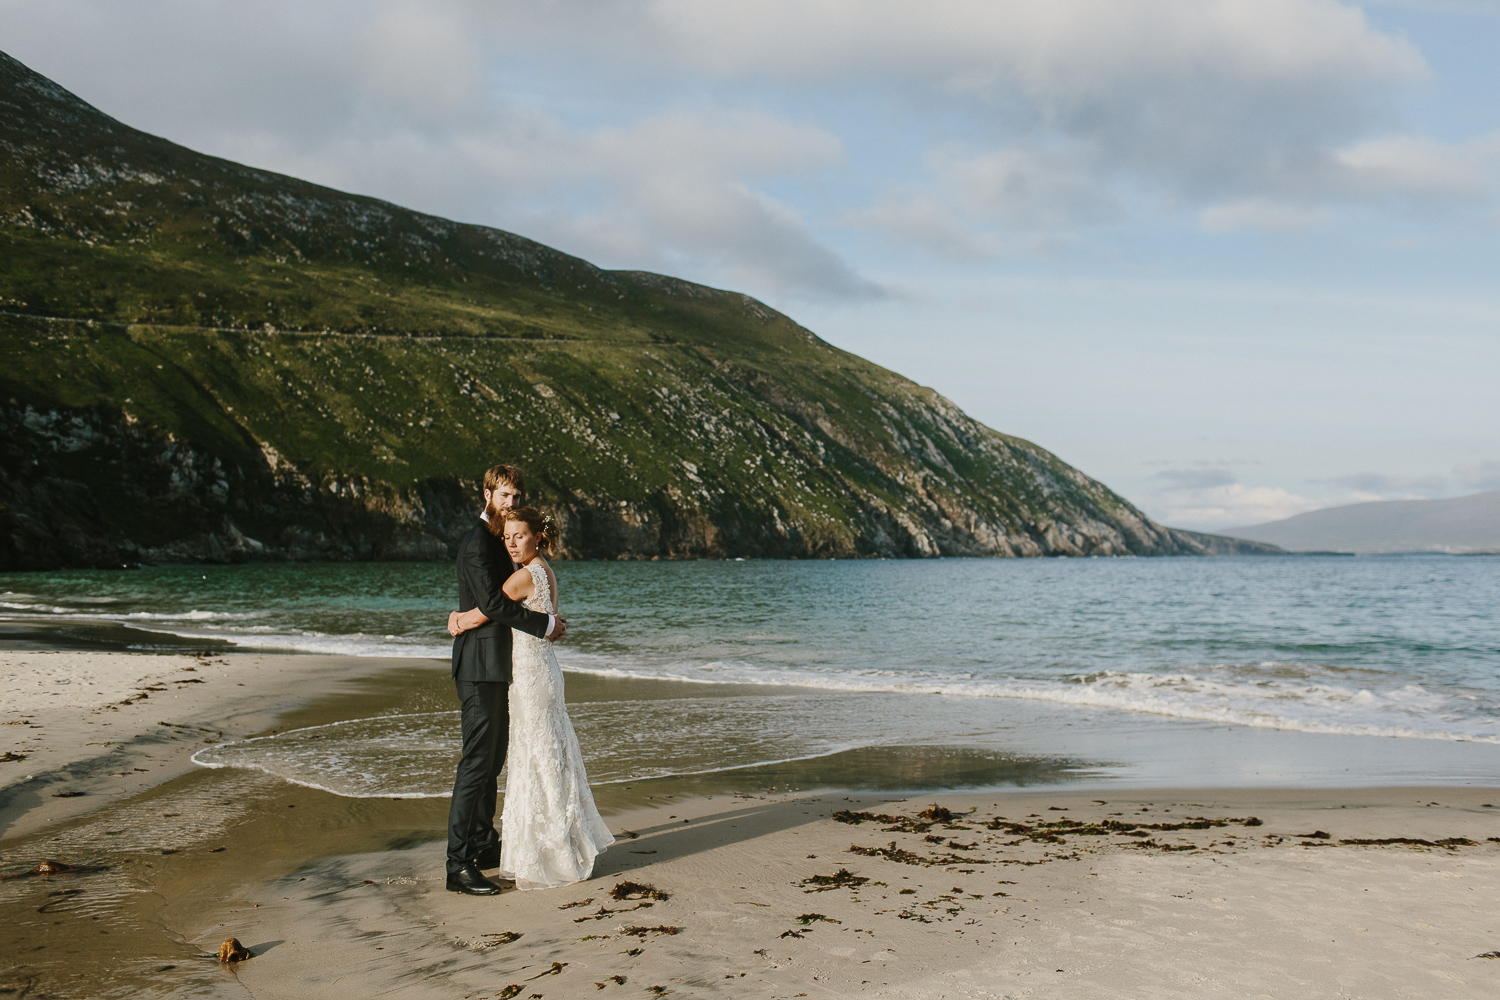 Achill-Island-Adventure-Wedding-Photographer-298.jpg